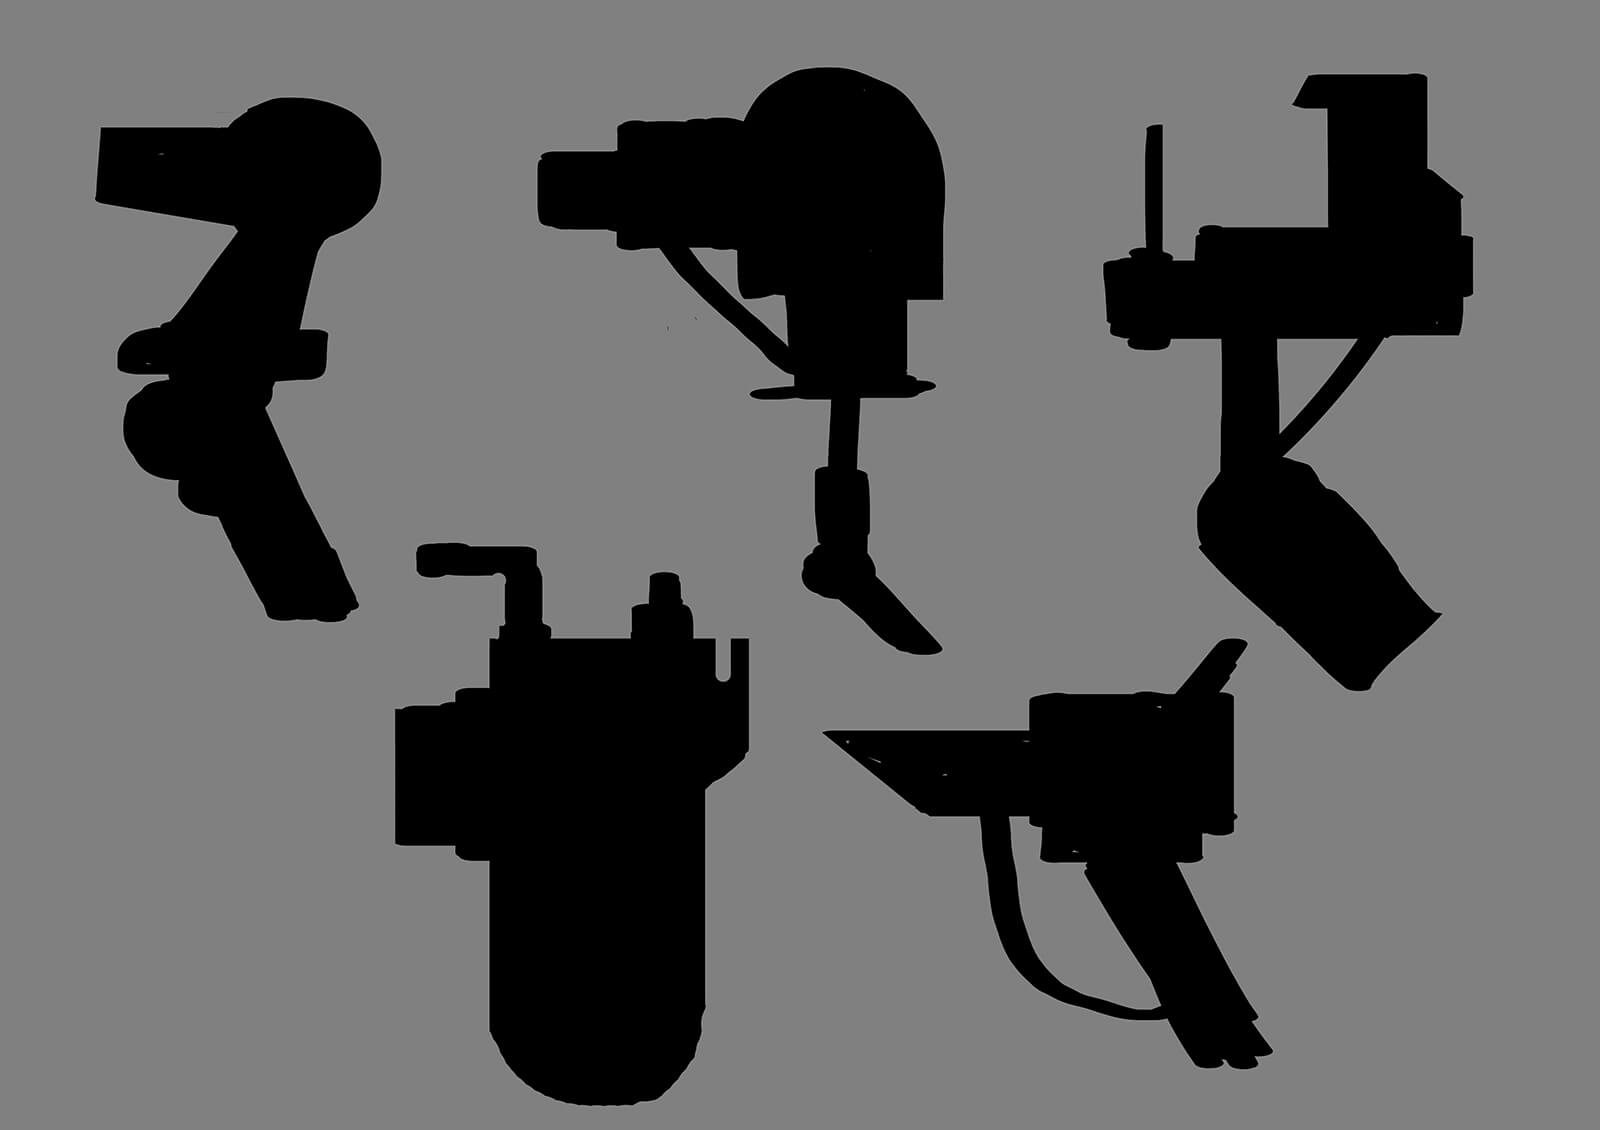 Silhouette sketches of various industrial equipment as seen in the film Deadly Delivery